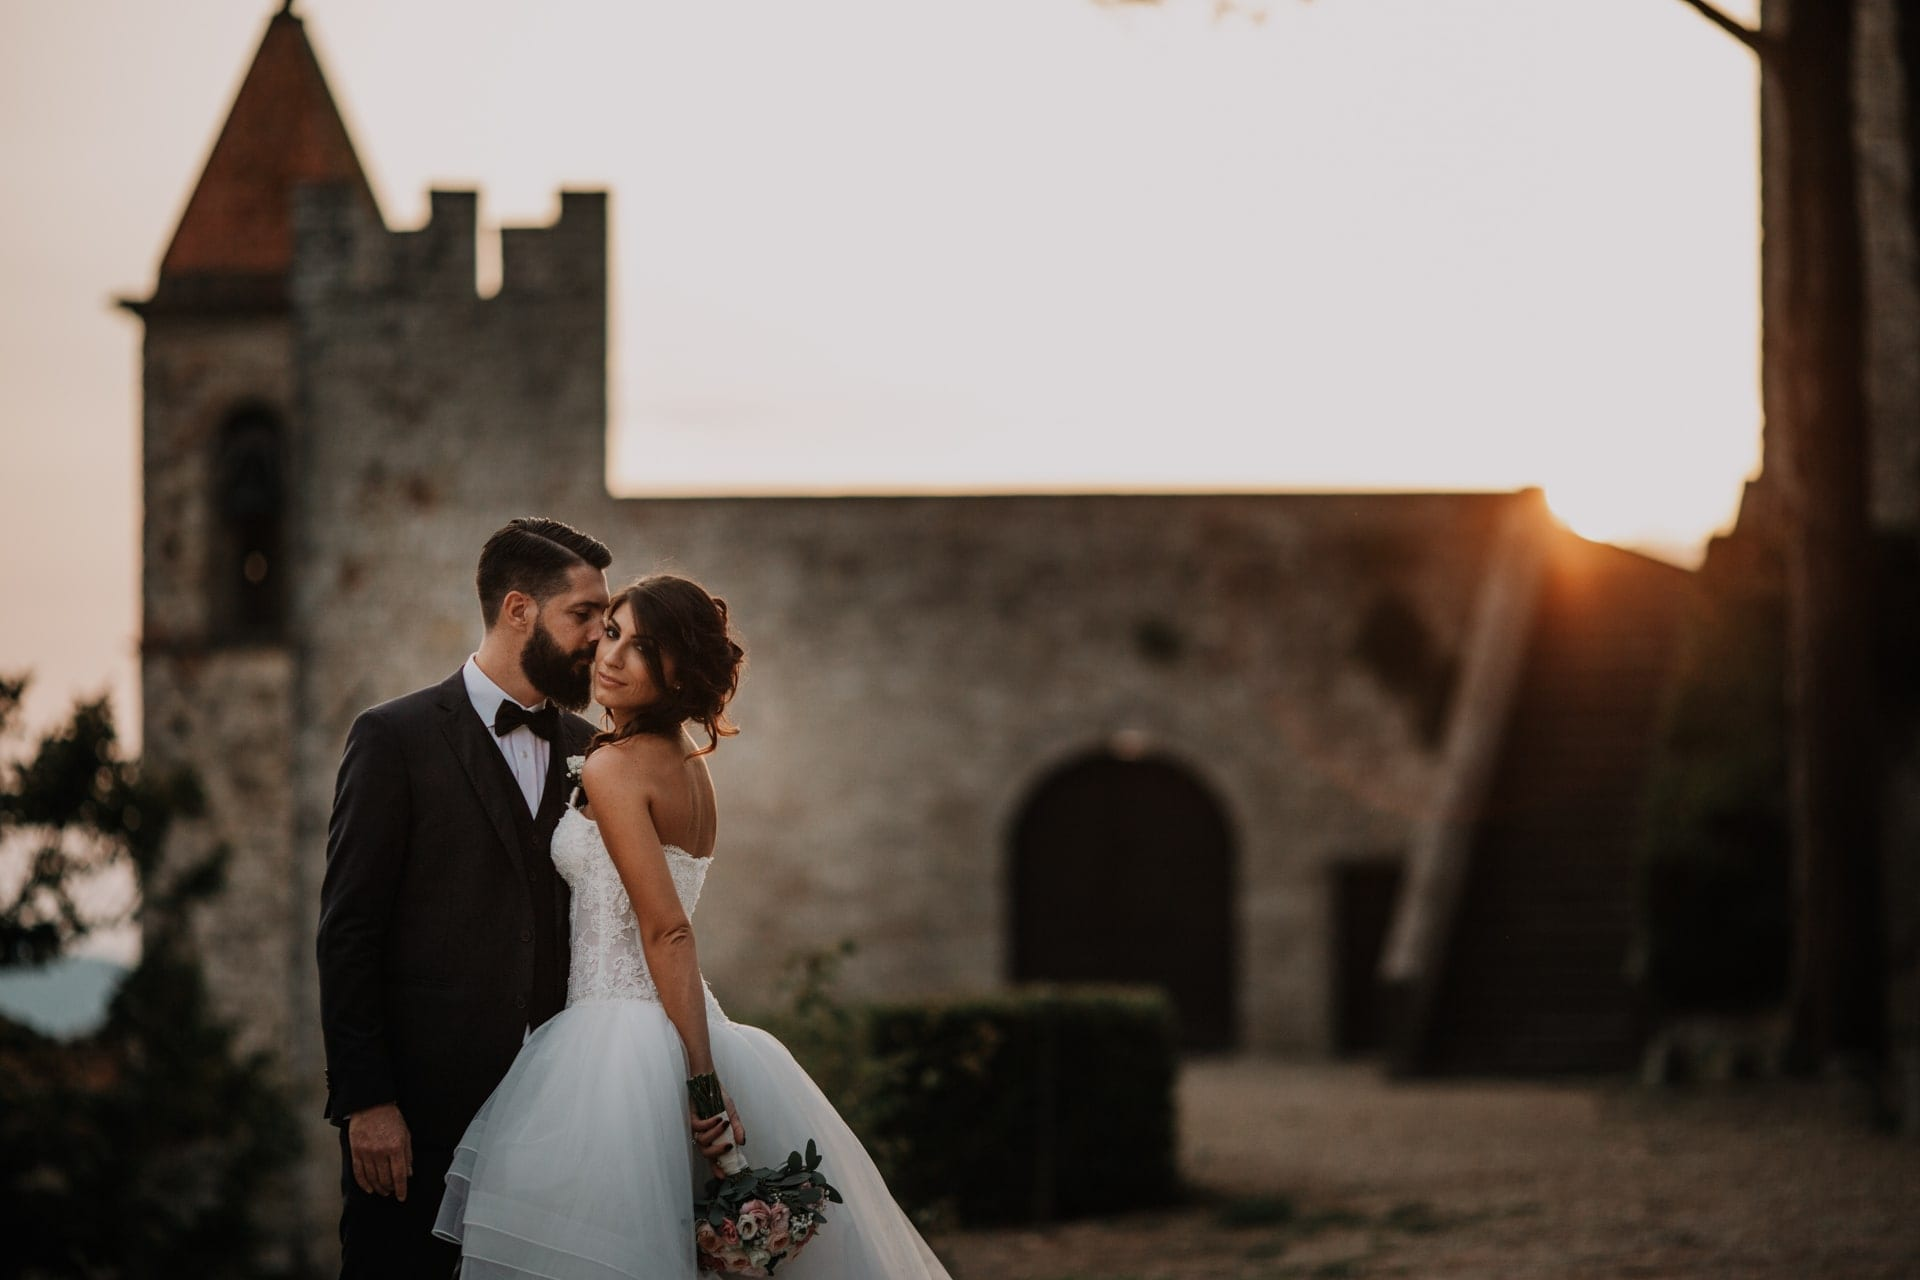 https://righiphotography-com.s3.eu-central-1.amazonaws.com/wp-content/uploads/2020/02/02183304/Wedding-Photo-Perfect-Mix-Studio-Fotografico-Righi-RIGHI-3.jpg